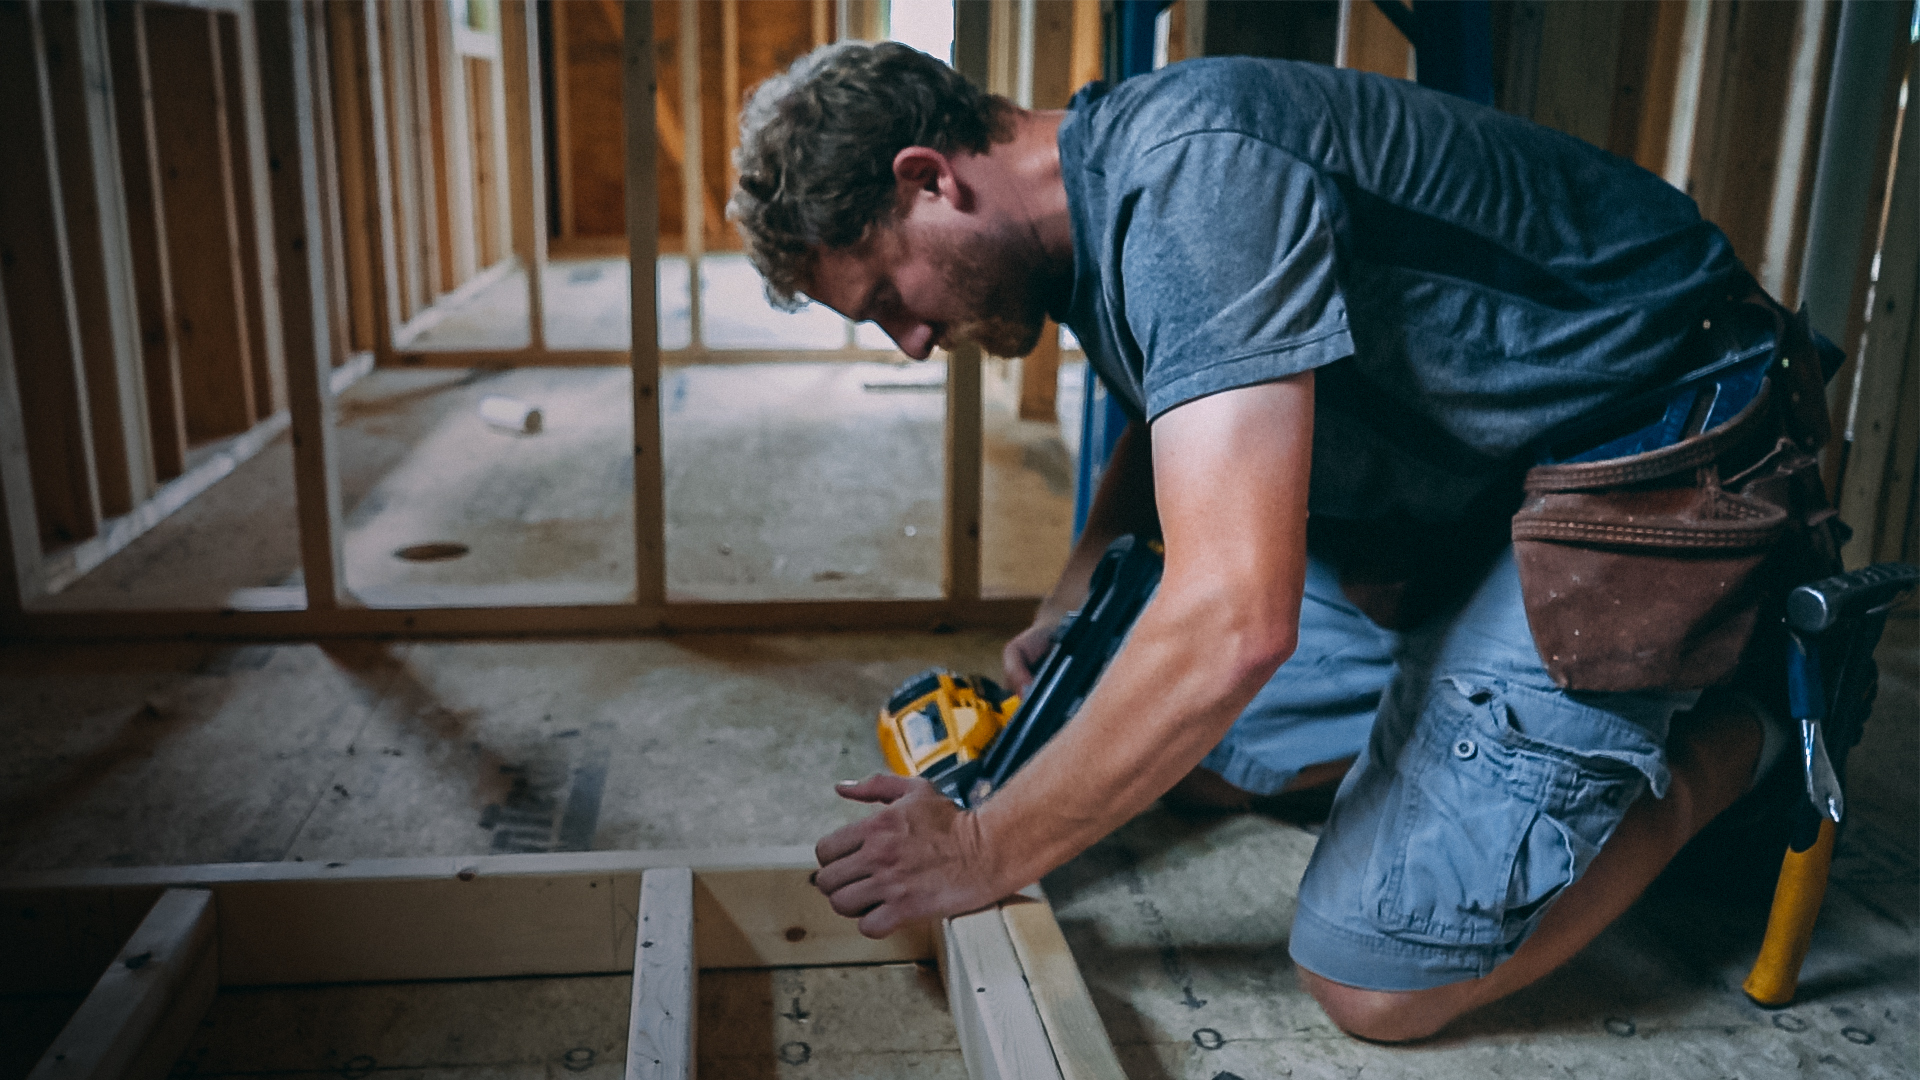 Hard-Working Americans: The Carpenter